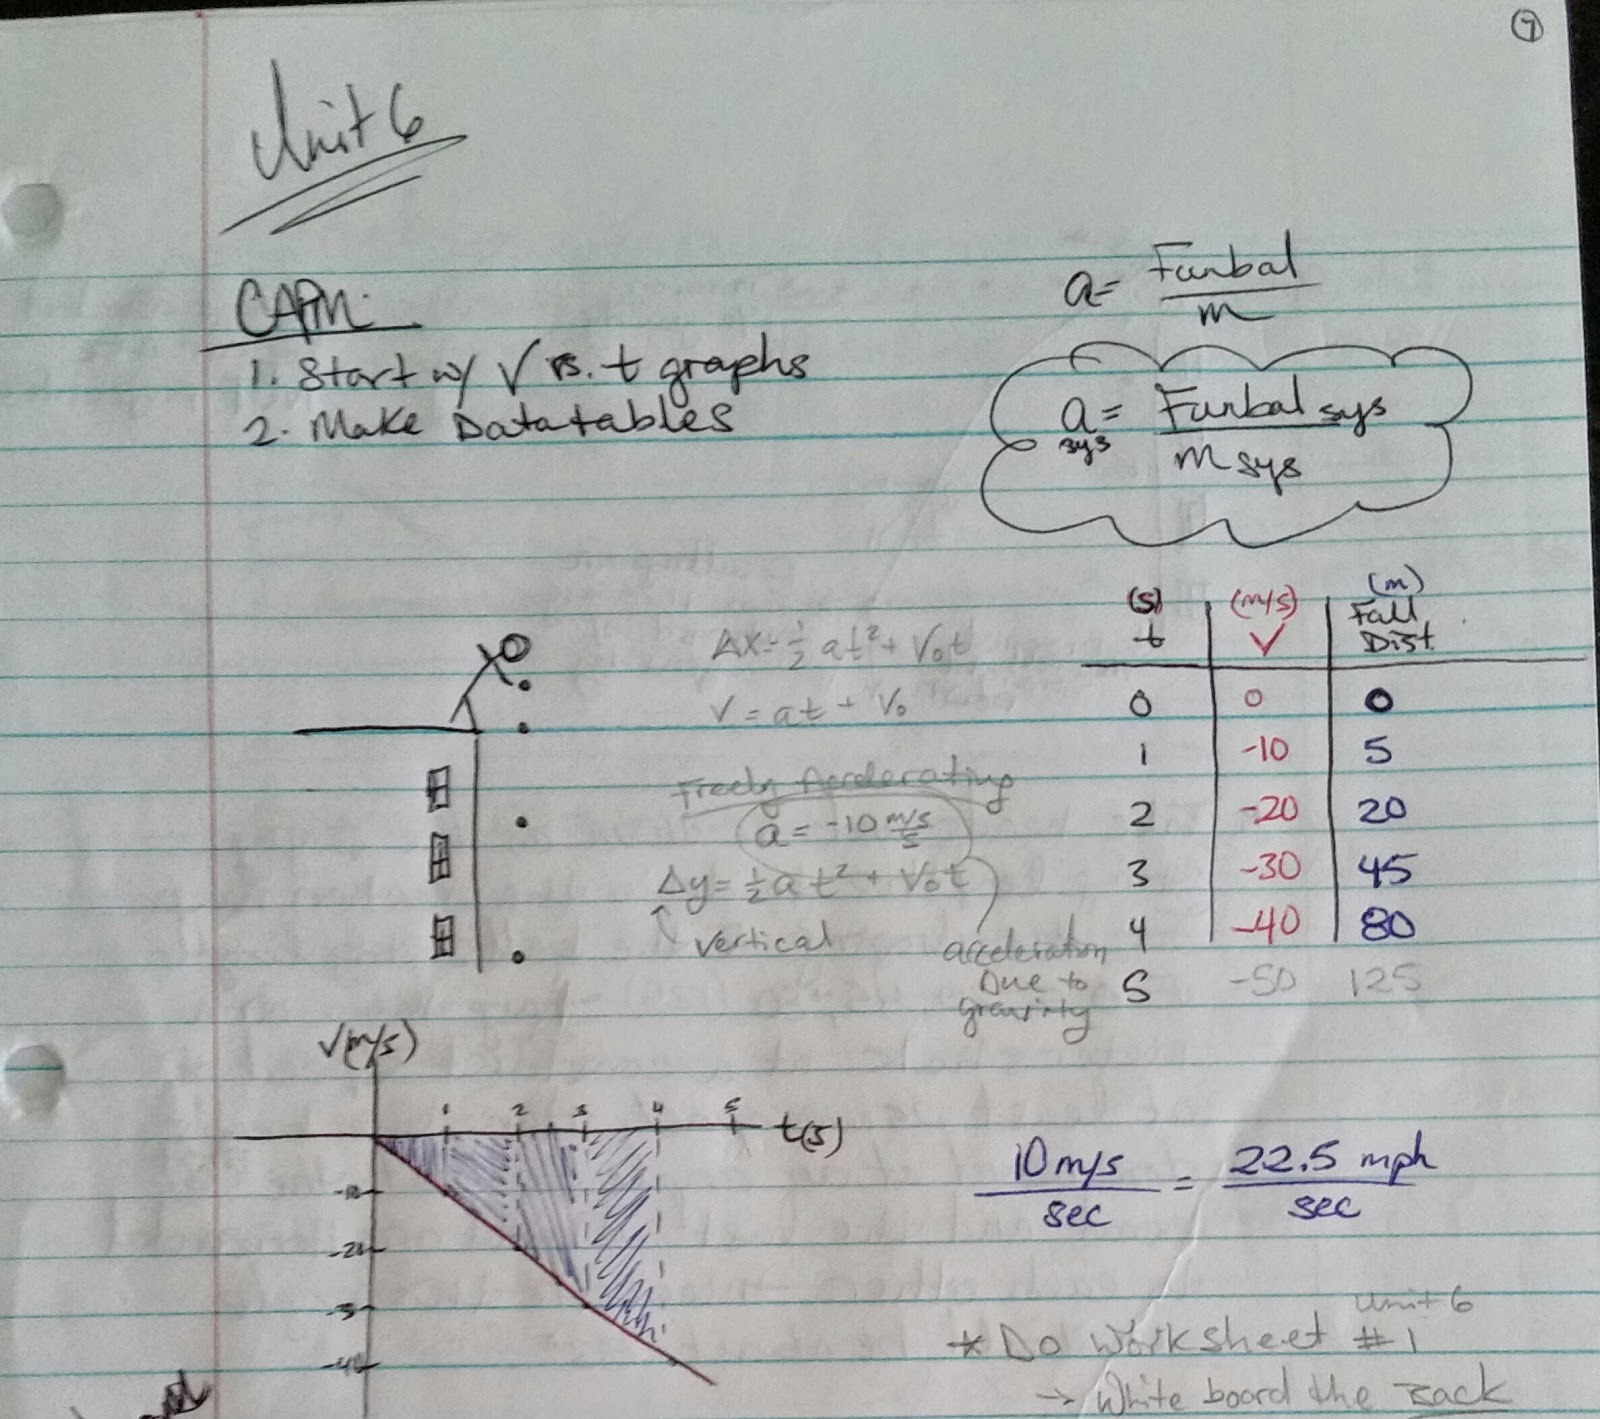 Unit 4   Worksheet   4 3 Heat Efficiency   Temperature   Pressurized together with 7  The pressure gauge on likewise Download   Study  Solution to IGCSE Physics Test  Worksheet   1 additionally Unit 2 Worksheet 3 Answers   Livinghealthybulletin moreover Alge 2 Unit   Deliveryoffice info further Physics Mechanics Modeling  Unit 2   Constant Velocity besides Free grade 4 measuring worksheets furthermore Physics funntals worksheet conservation of momentum answers besides Westgate Mennonite Collegiate Unit 4  Chemical Equilibrium together with  moreover Chapter 1 worksheet as well Force Worksheet Part 1   YouTube together with Review for AP Physics 1 exam   Science   Khan Academy in addition  besides Free grade 4 measuring worksheets likewise Unit Vi Worksheet 1 Physics Answers   Livinghealthybulletin. on unit 4 worksheet 1 physics